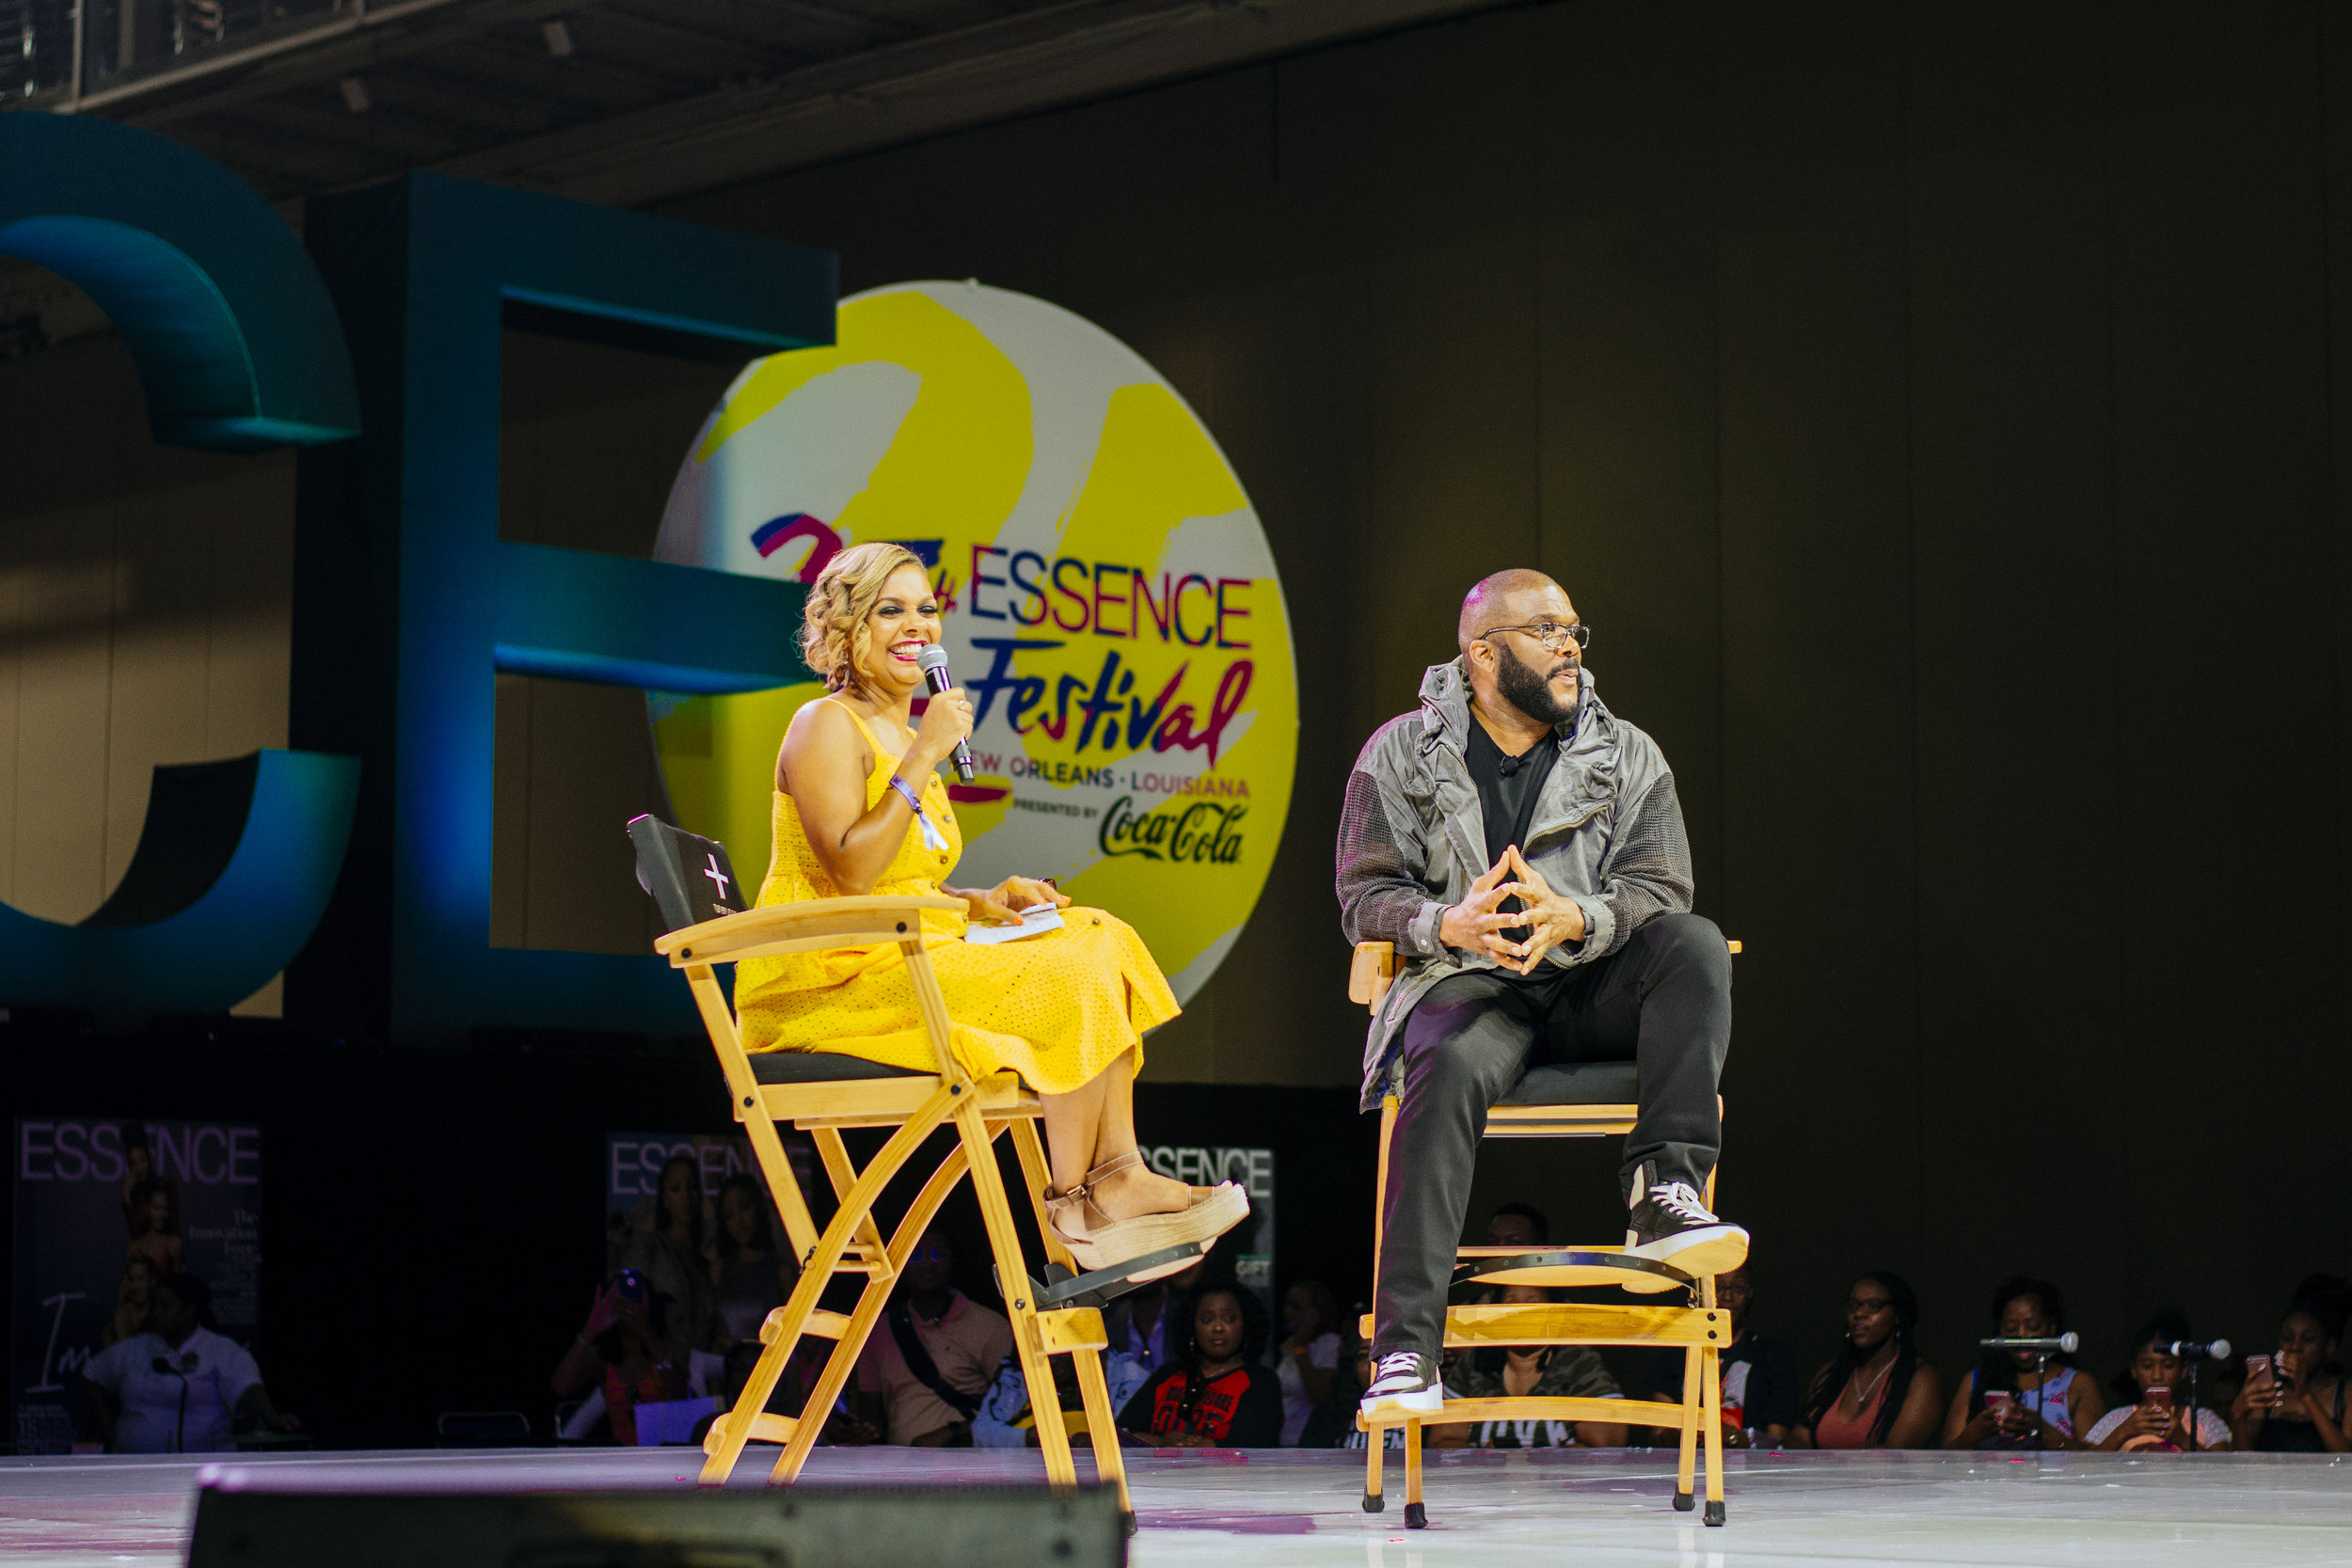 Tyler Perry being interviewed at Essence Fest 25.